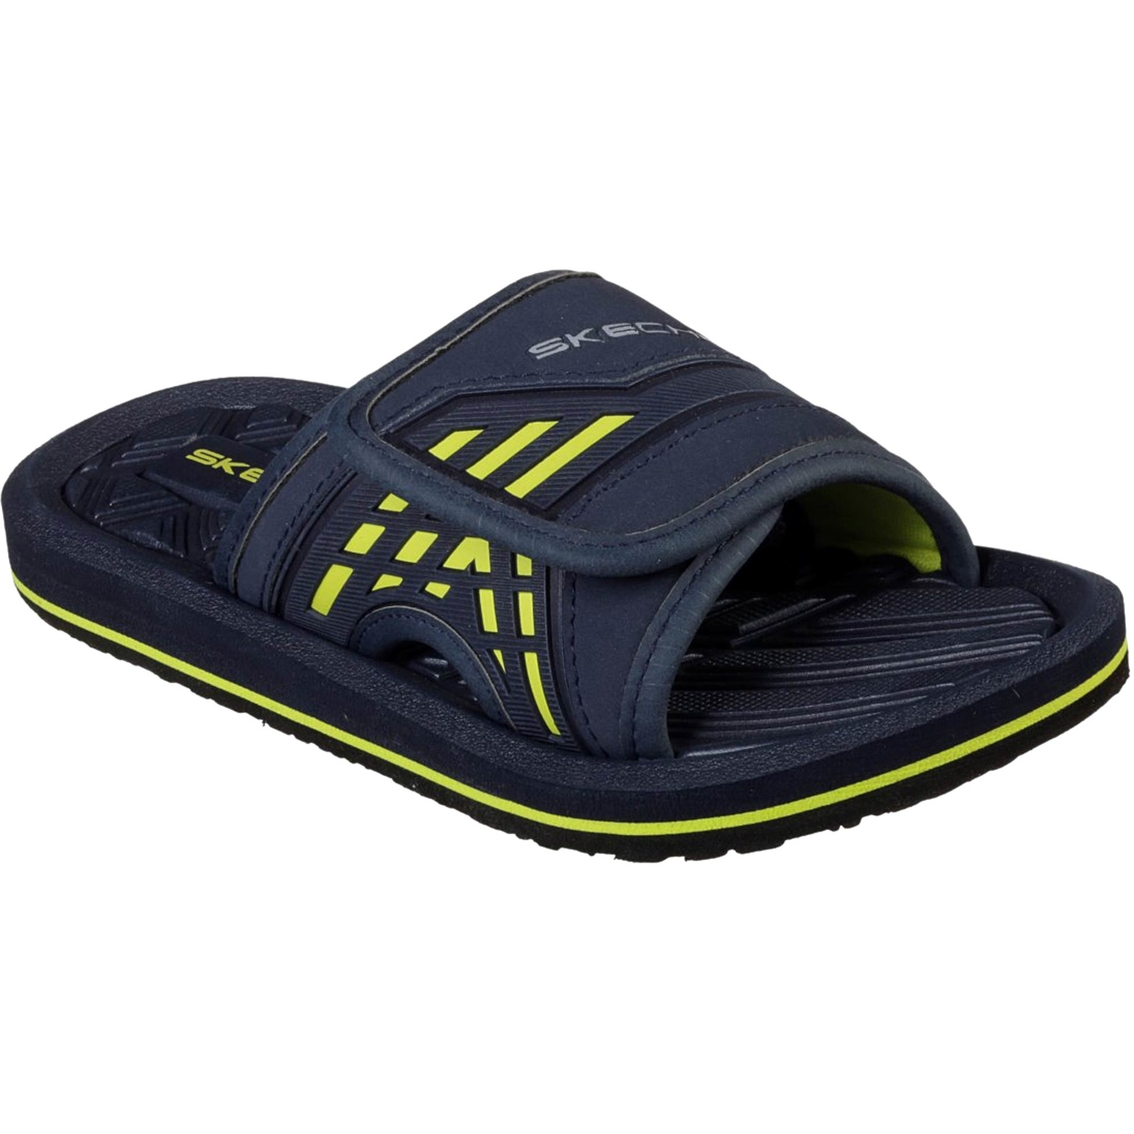 Skechers Boys Solar Rush Slide Sandals Sandals Shoes